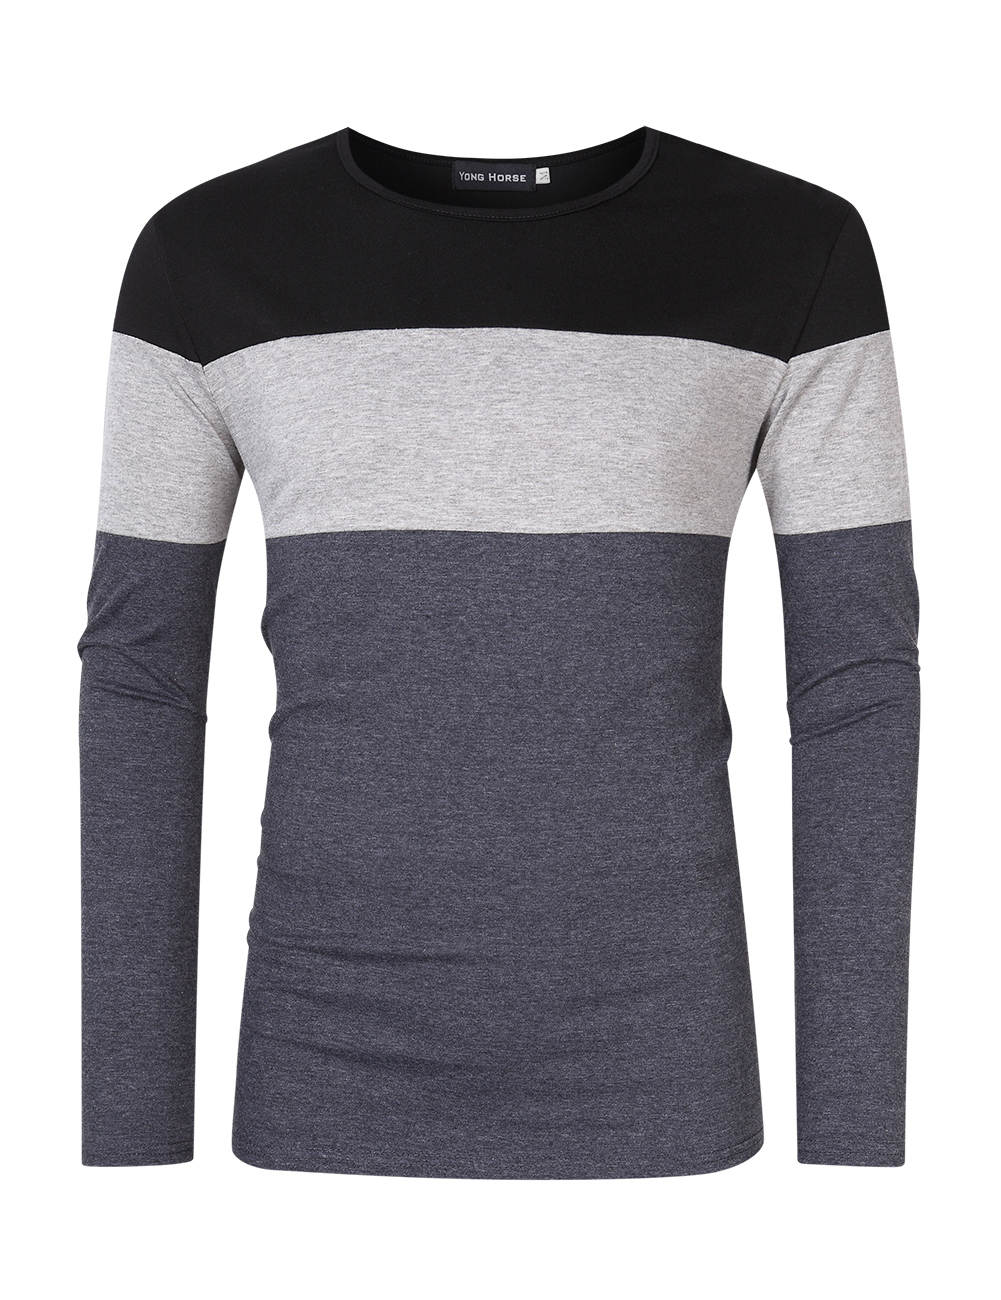 Yong Horse Men's Long Sleeve Cotton T-Shirt